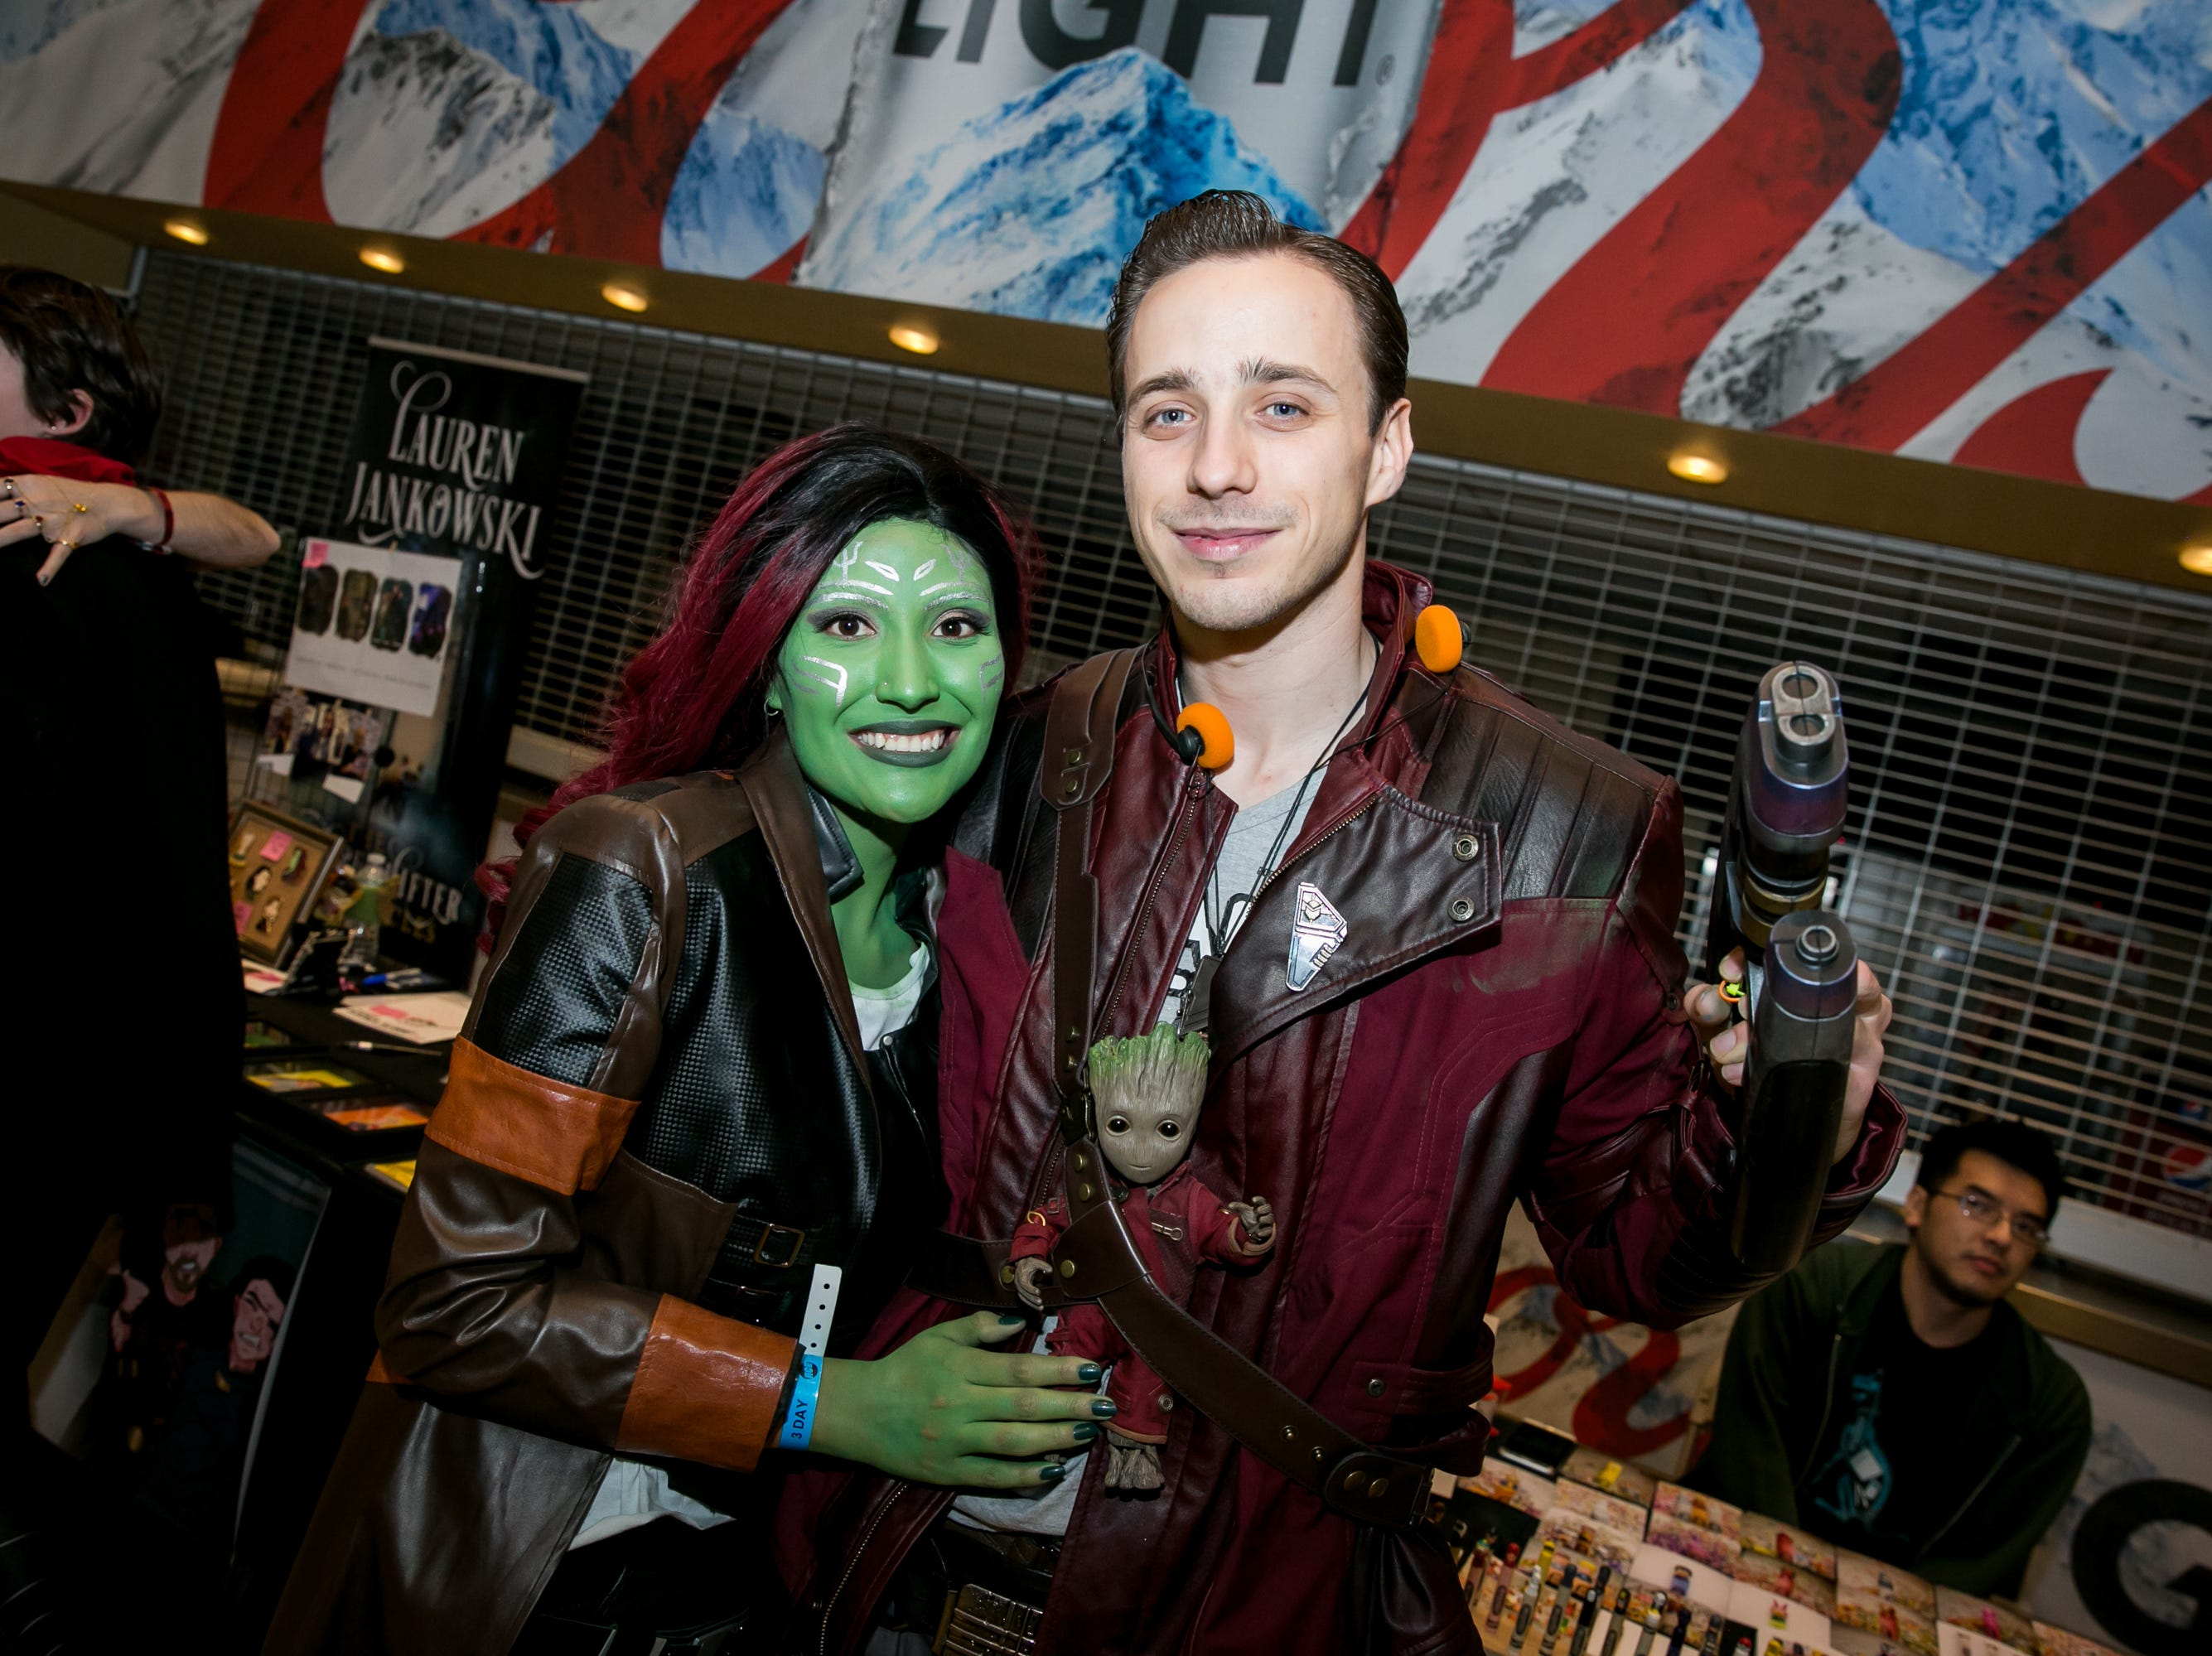 This Guardians of the Galaxy cosplay was awesome during Ace Comic Con at Gila River Arena in Glendale on Sunday, Jan. 13, 2019.